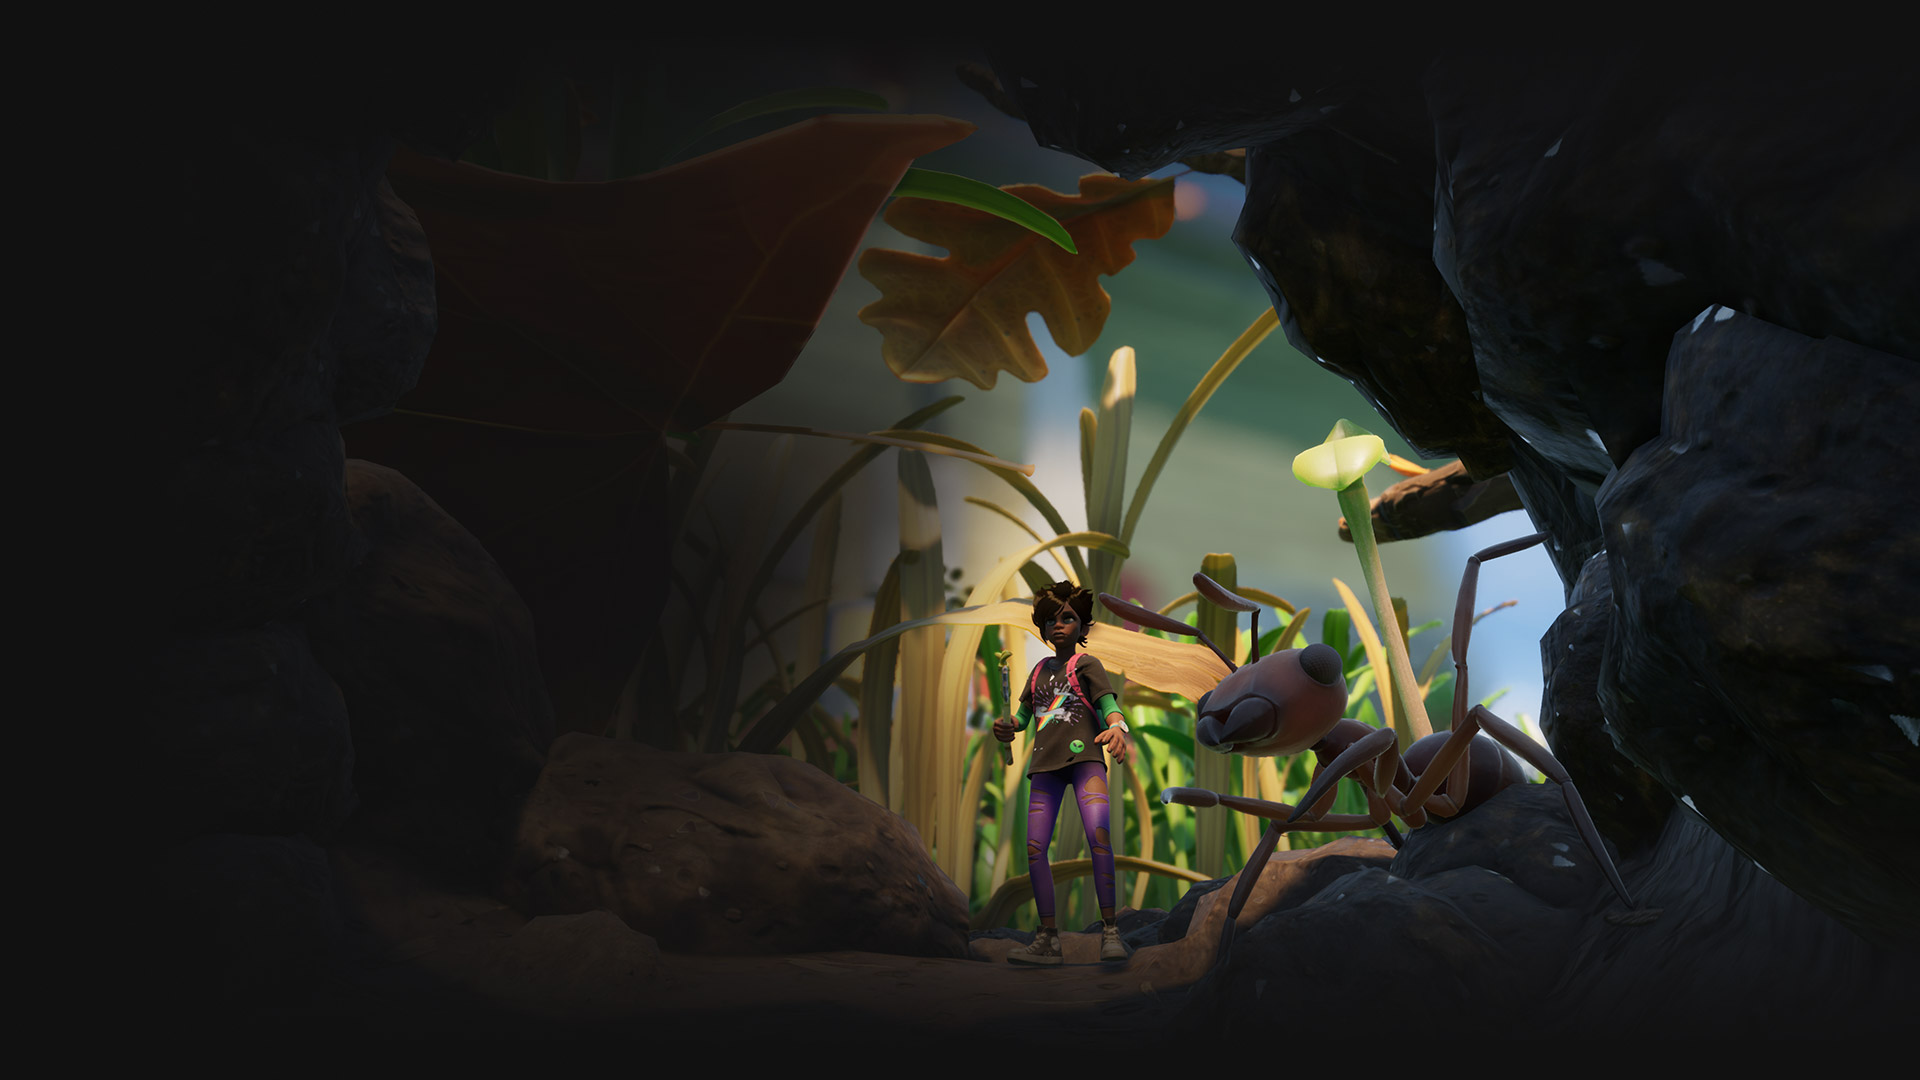 A character wielding a stick encounters a giant ant in a scene from Grounded